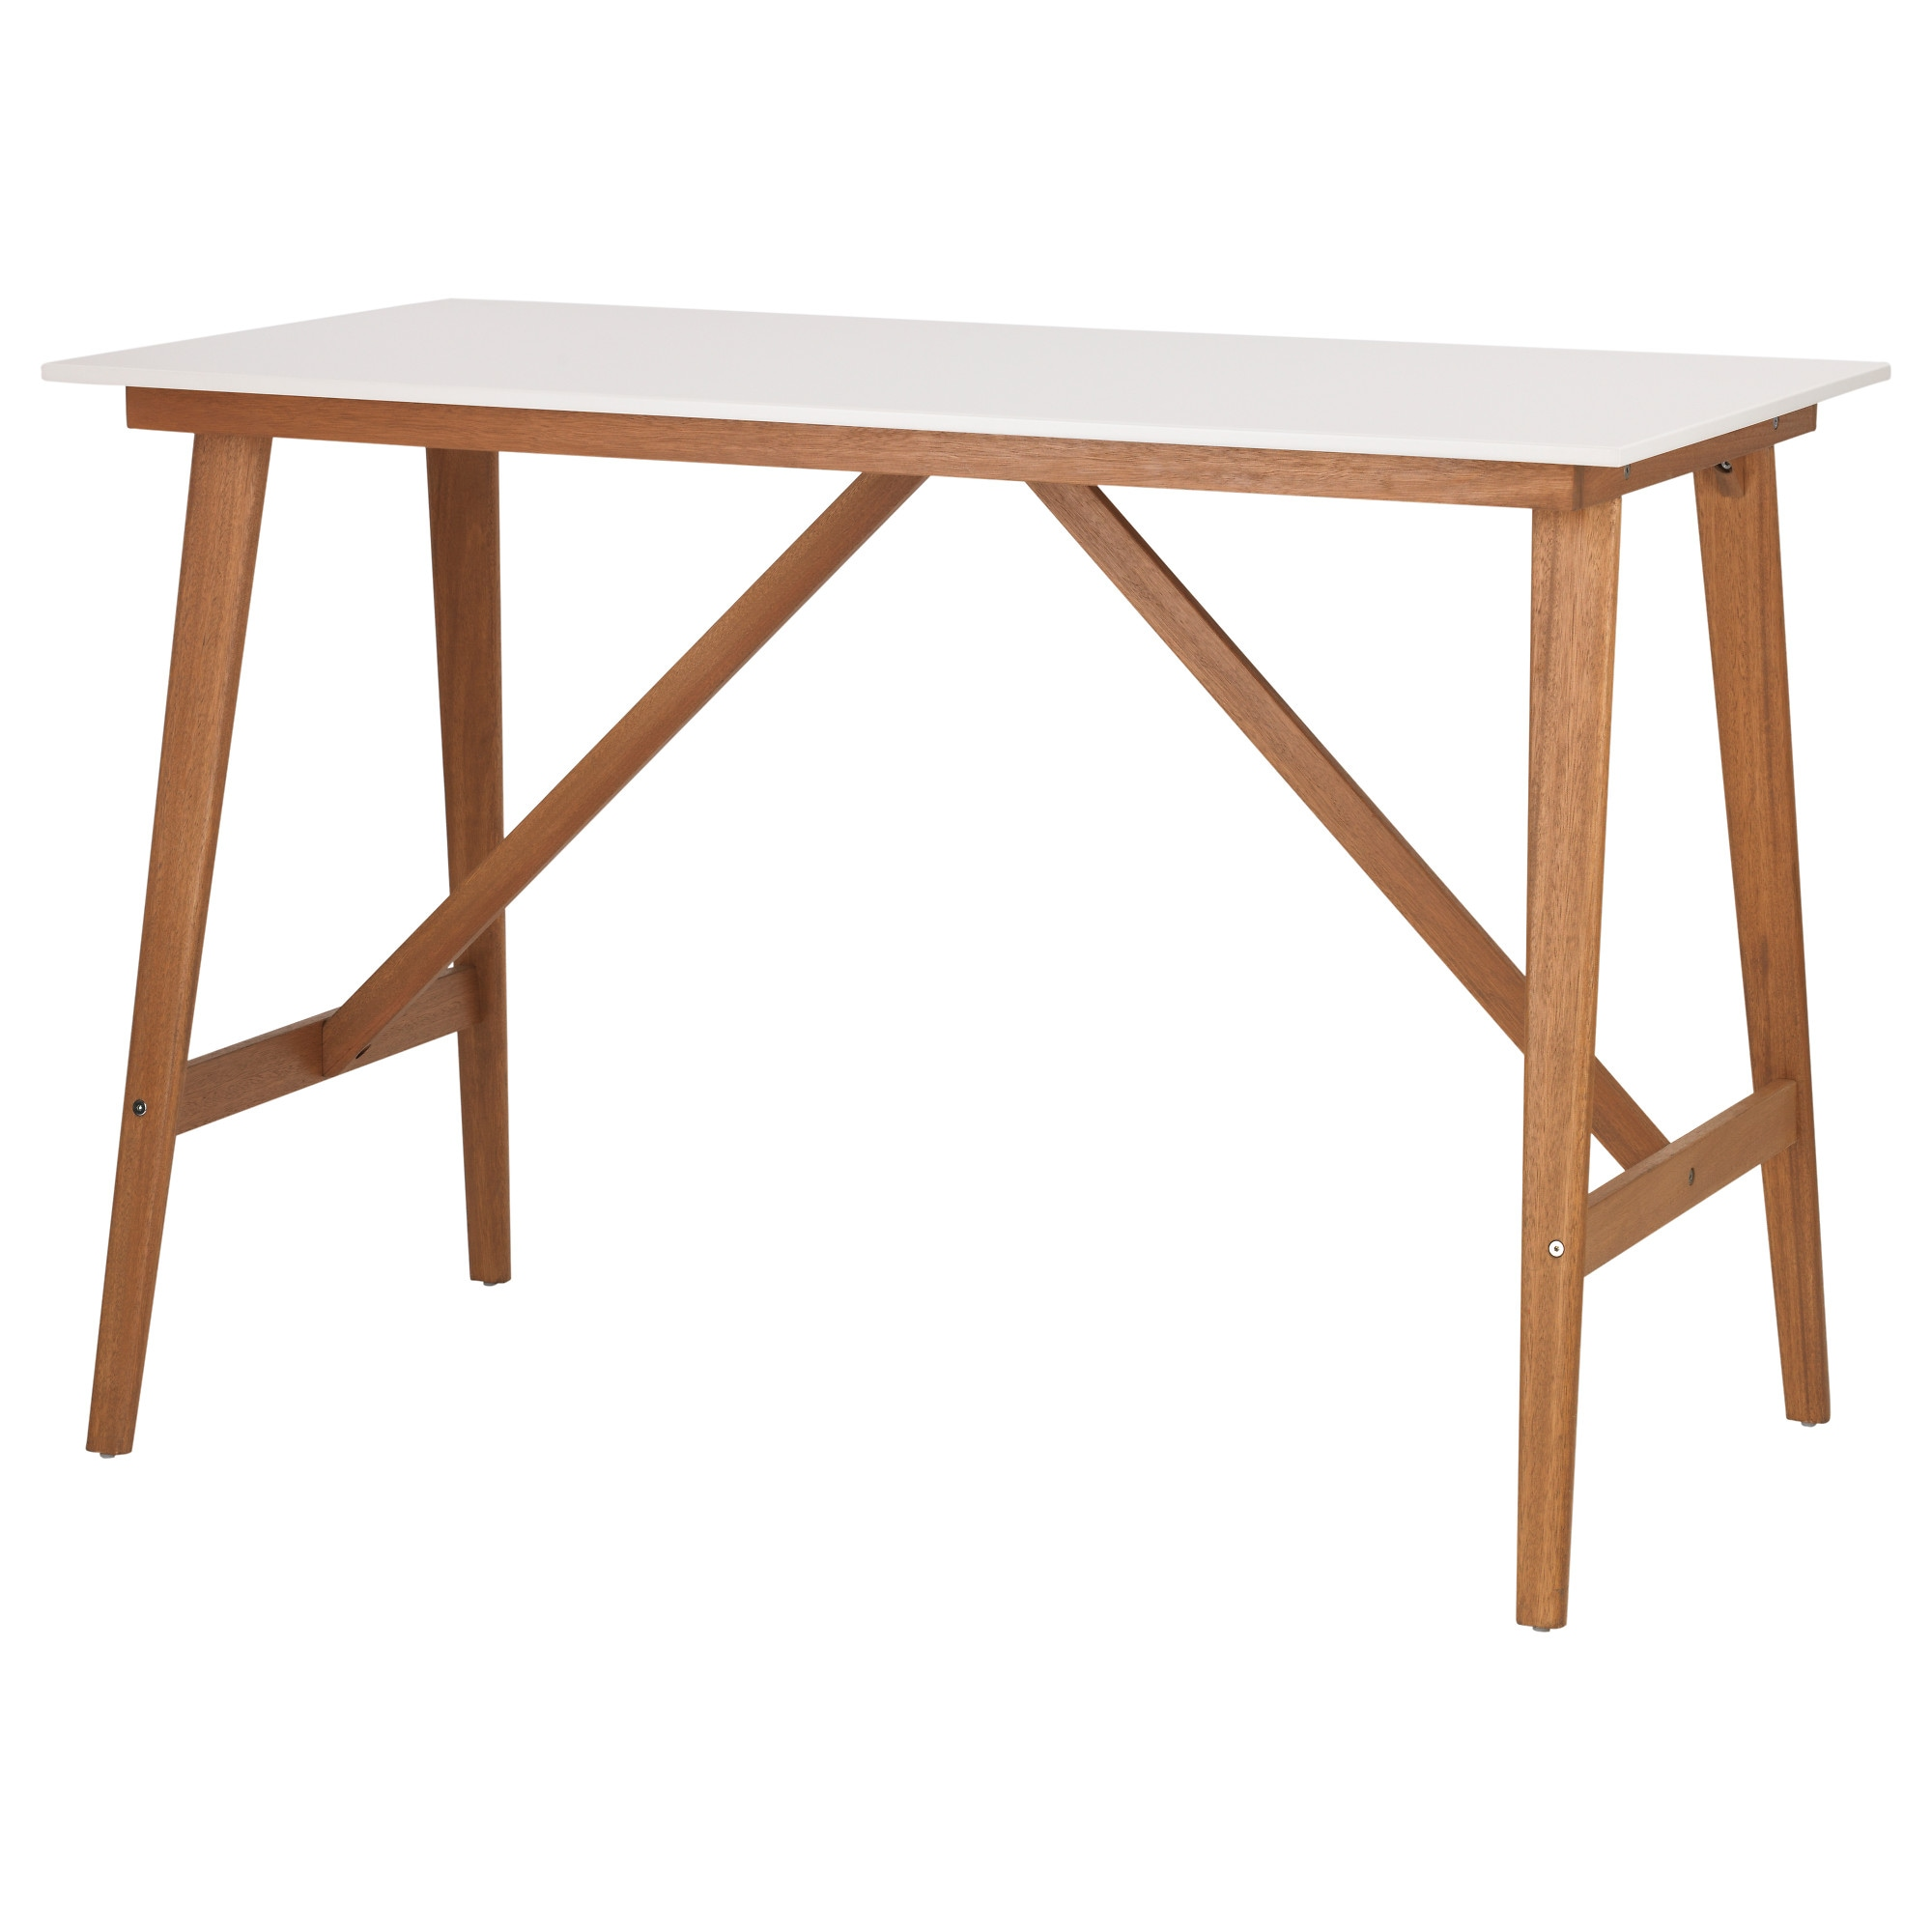 FANBYN bar table, white Length: 55 1/8